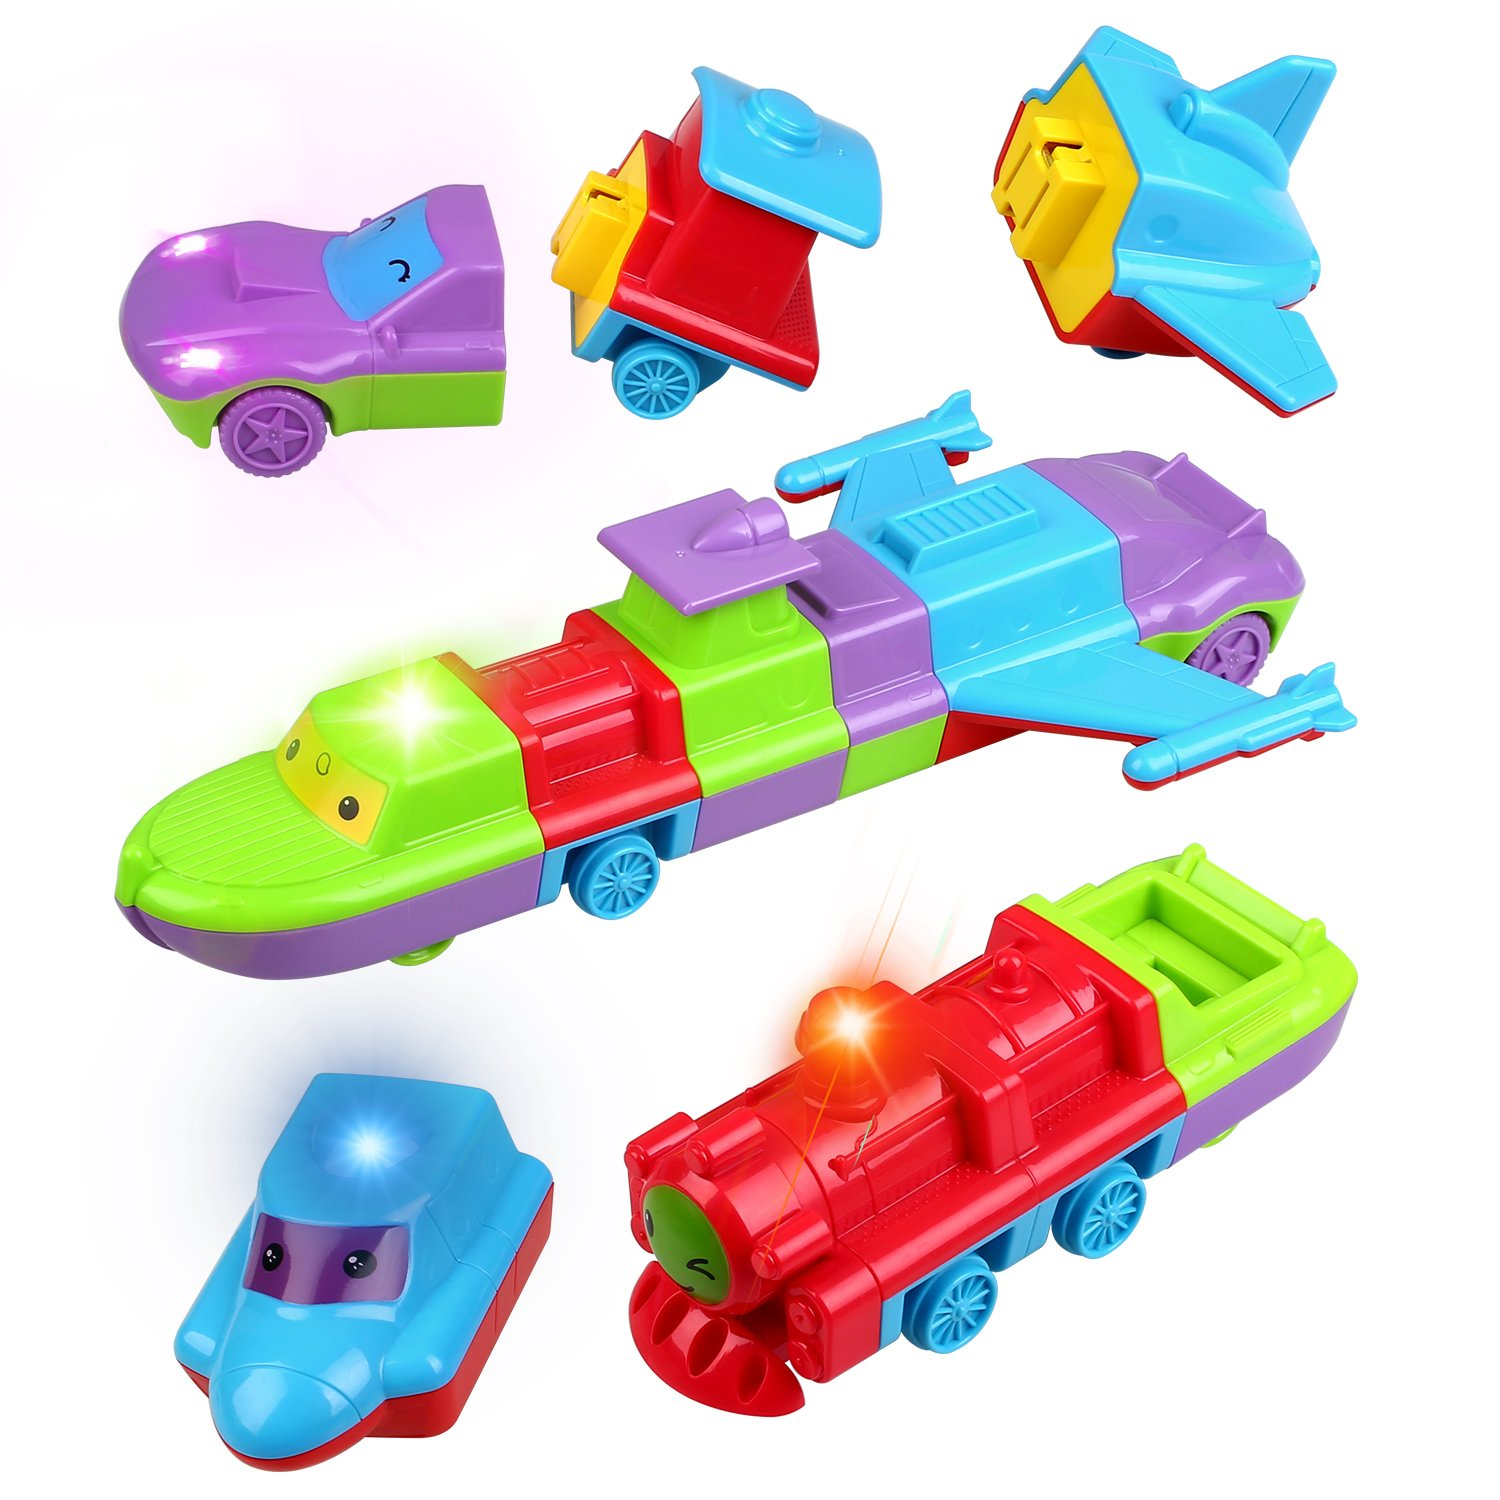 Toddler Musical Cars Toys Set Assembly Car Speedboat Train Plane Kits with Light and Music Best Gifts for Toddlers Kids by Peradix